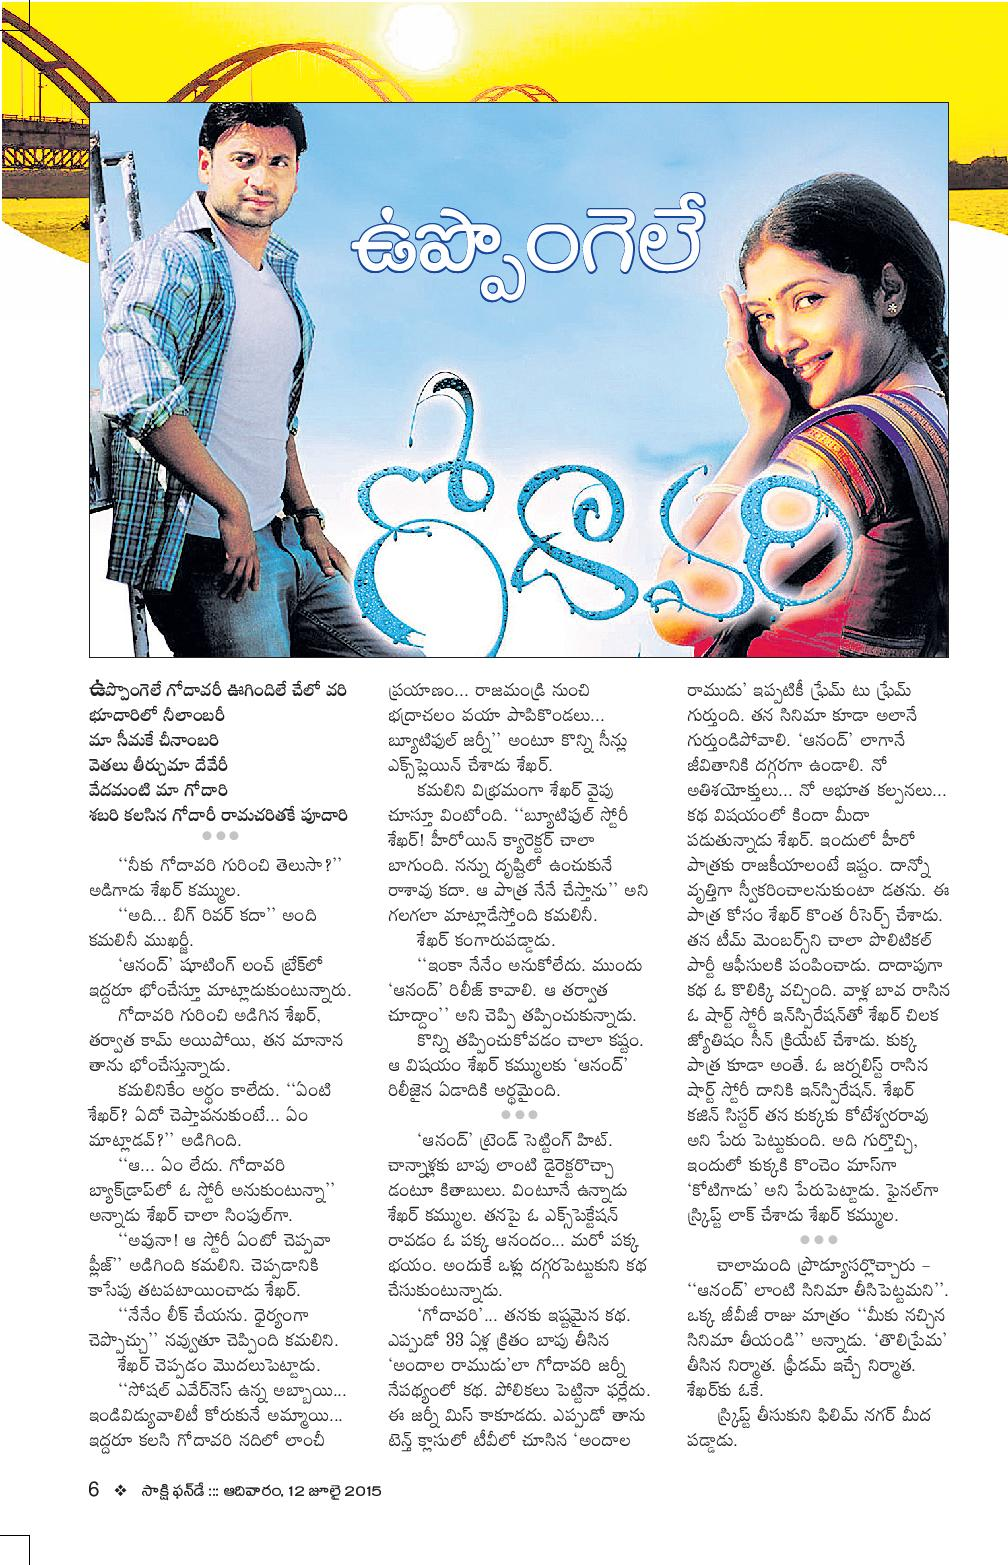 Godavari Movie Pushkaralu Spl_Funday (12-07-2015)-page-001